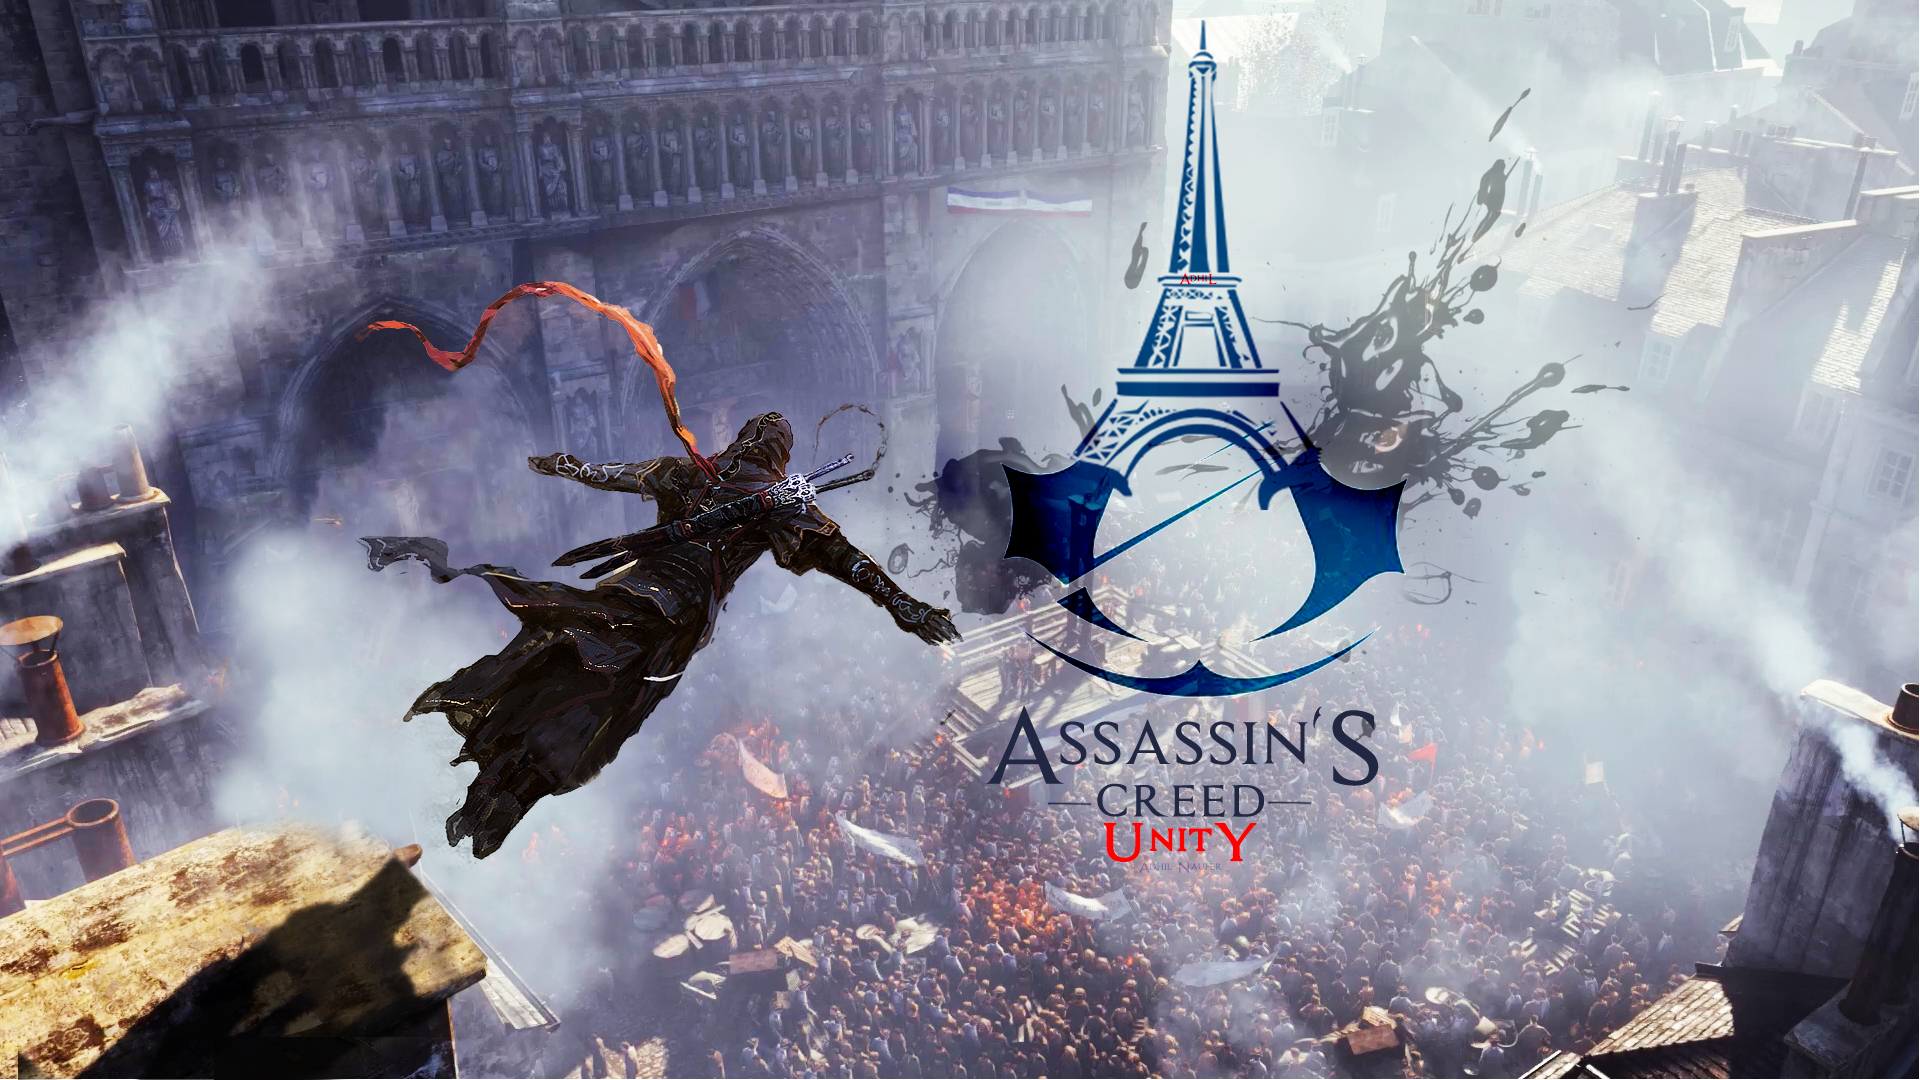 Assassins creed unity matchmaking issues